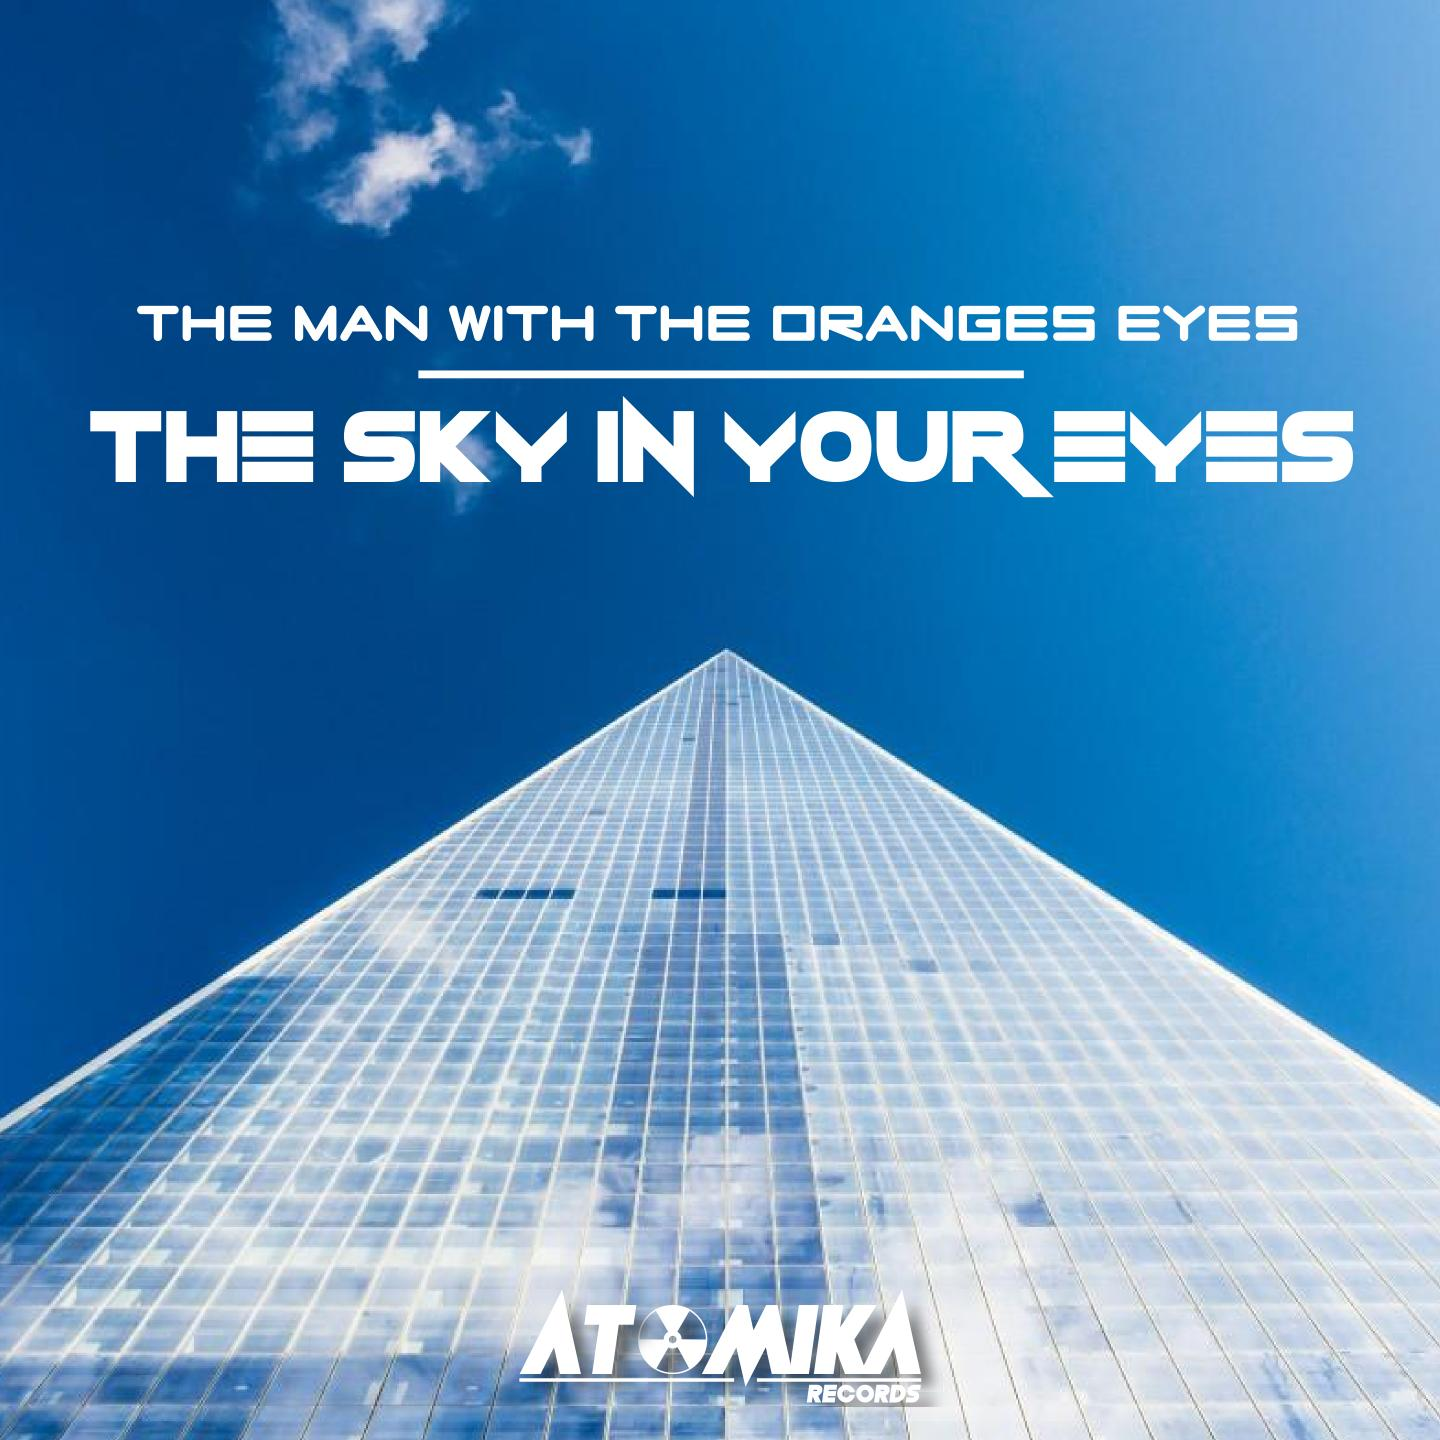 ATOMIKA - THE SKY IN YOUR EYES